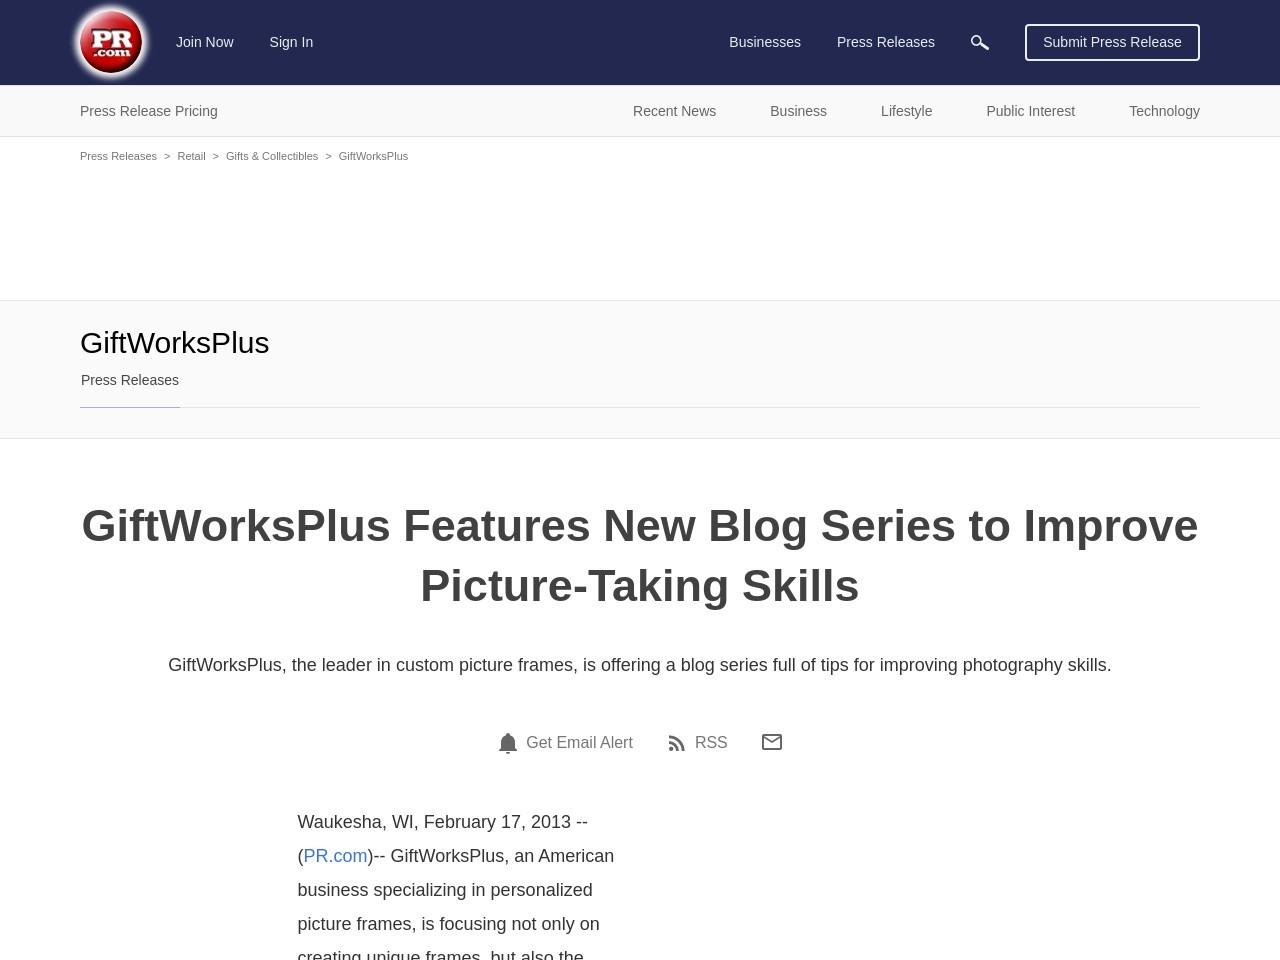 GiftWorksPlus Features New Blog Series to Improve Picture-Taking Skills